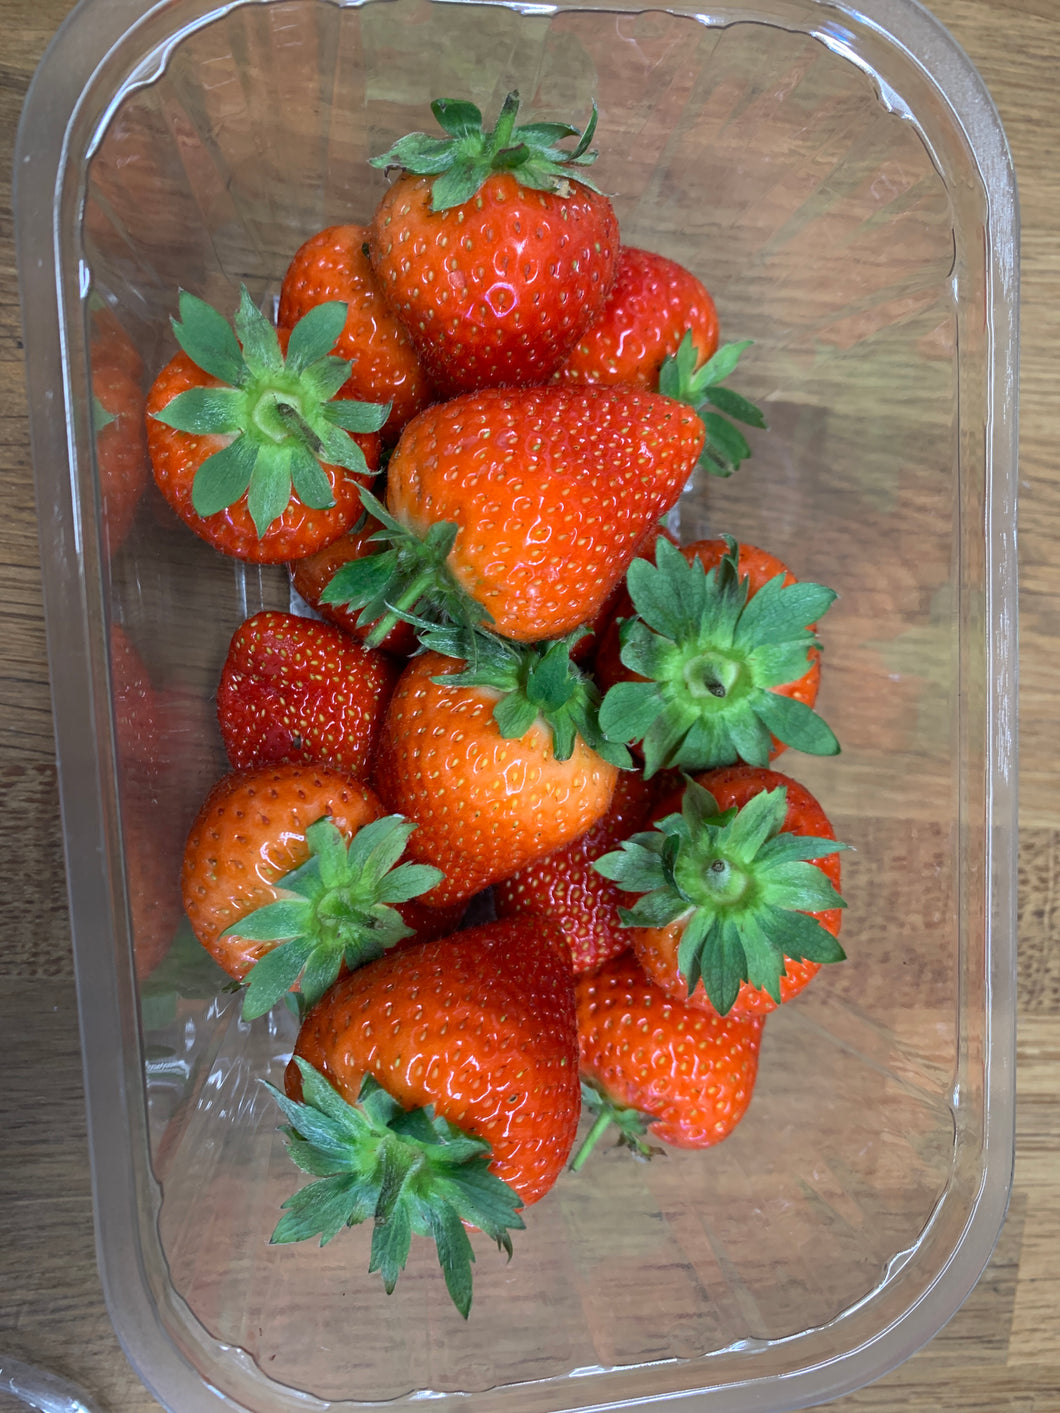 Strawberries (per punnet)